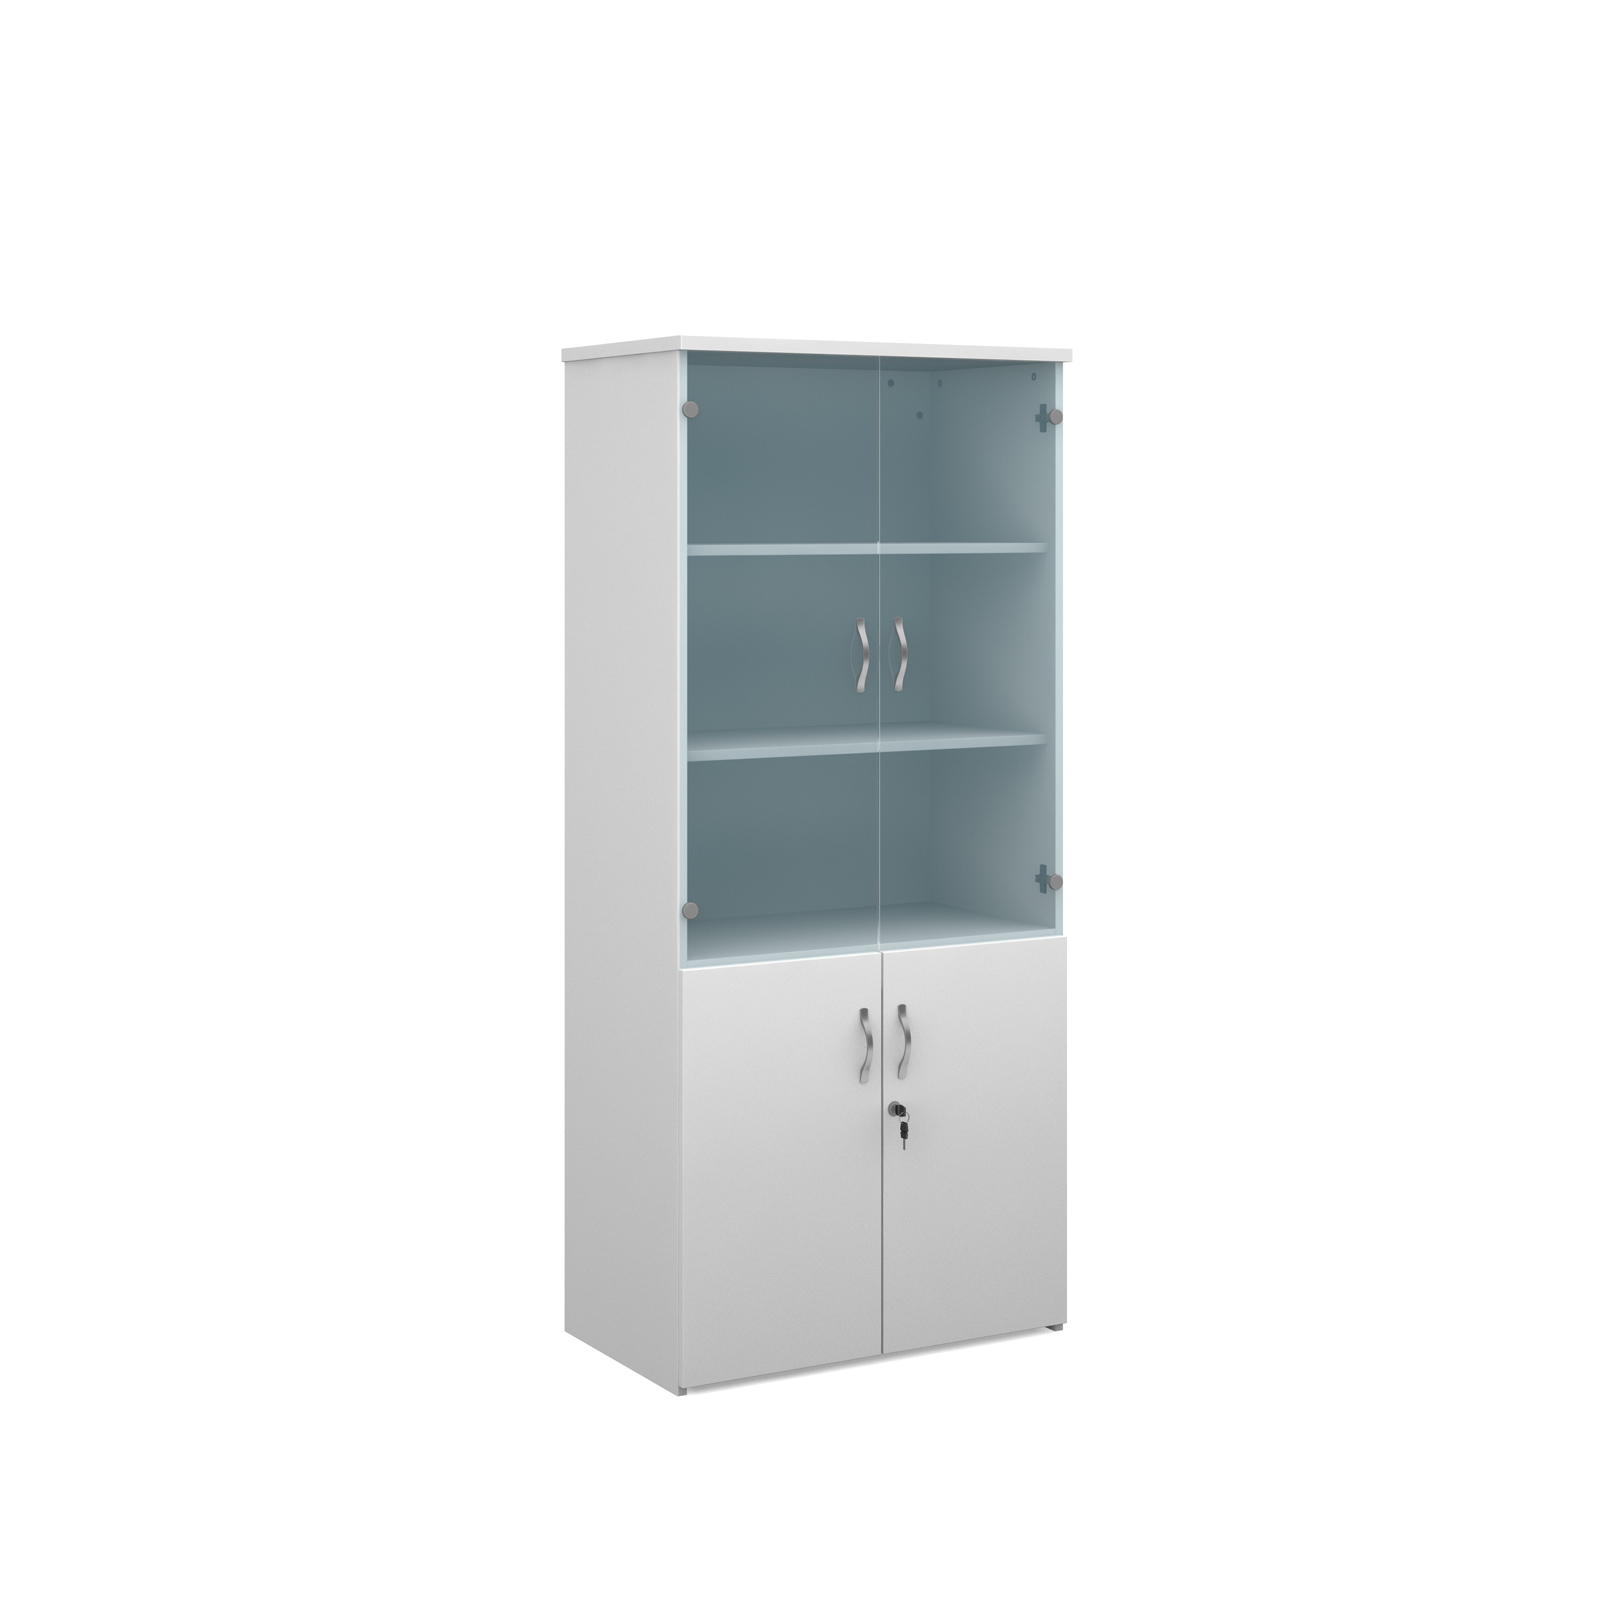 1790mm high combination unit with glass and wood doors in white